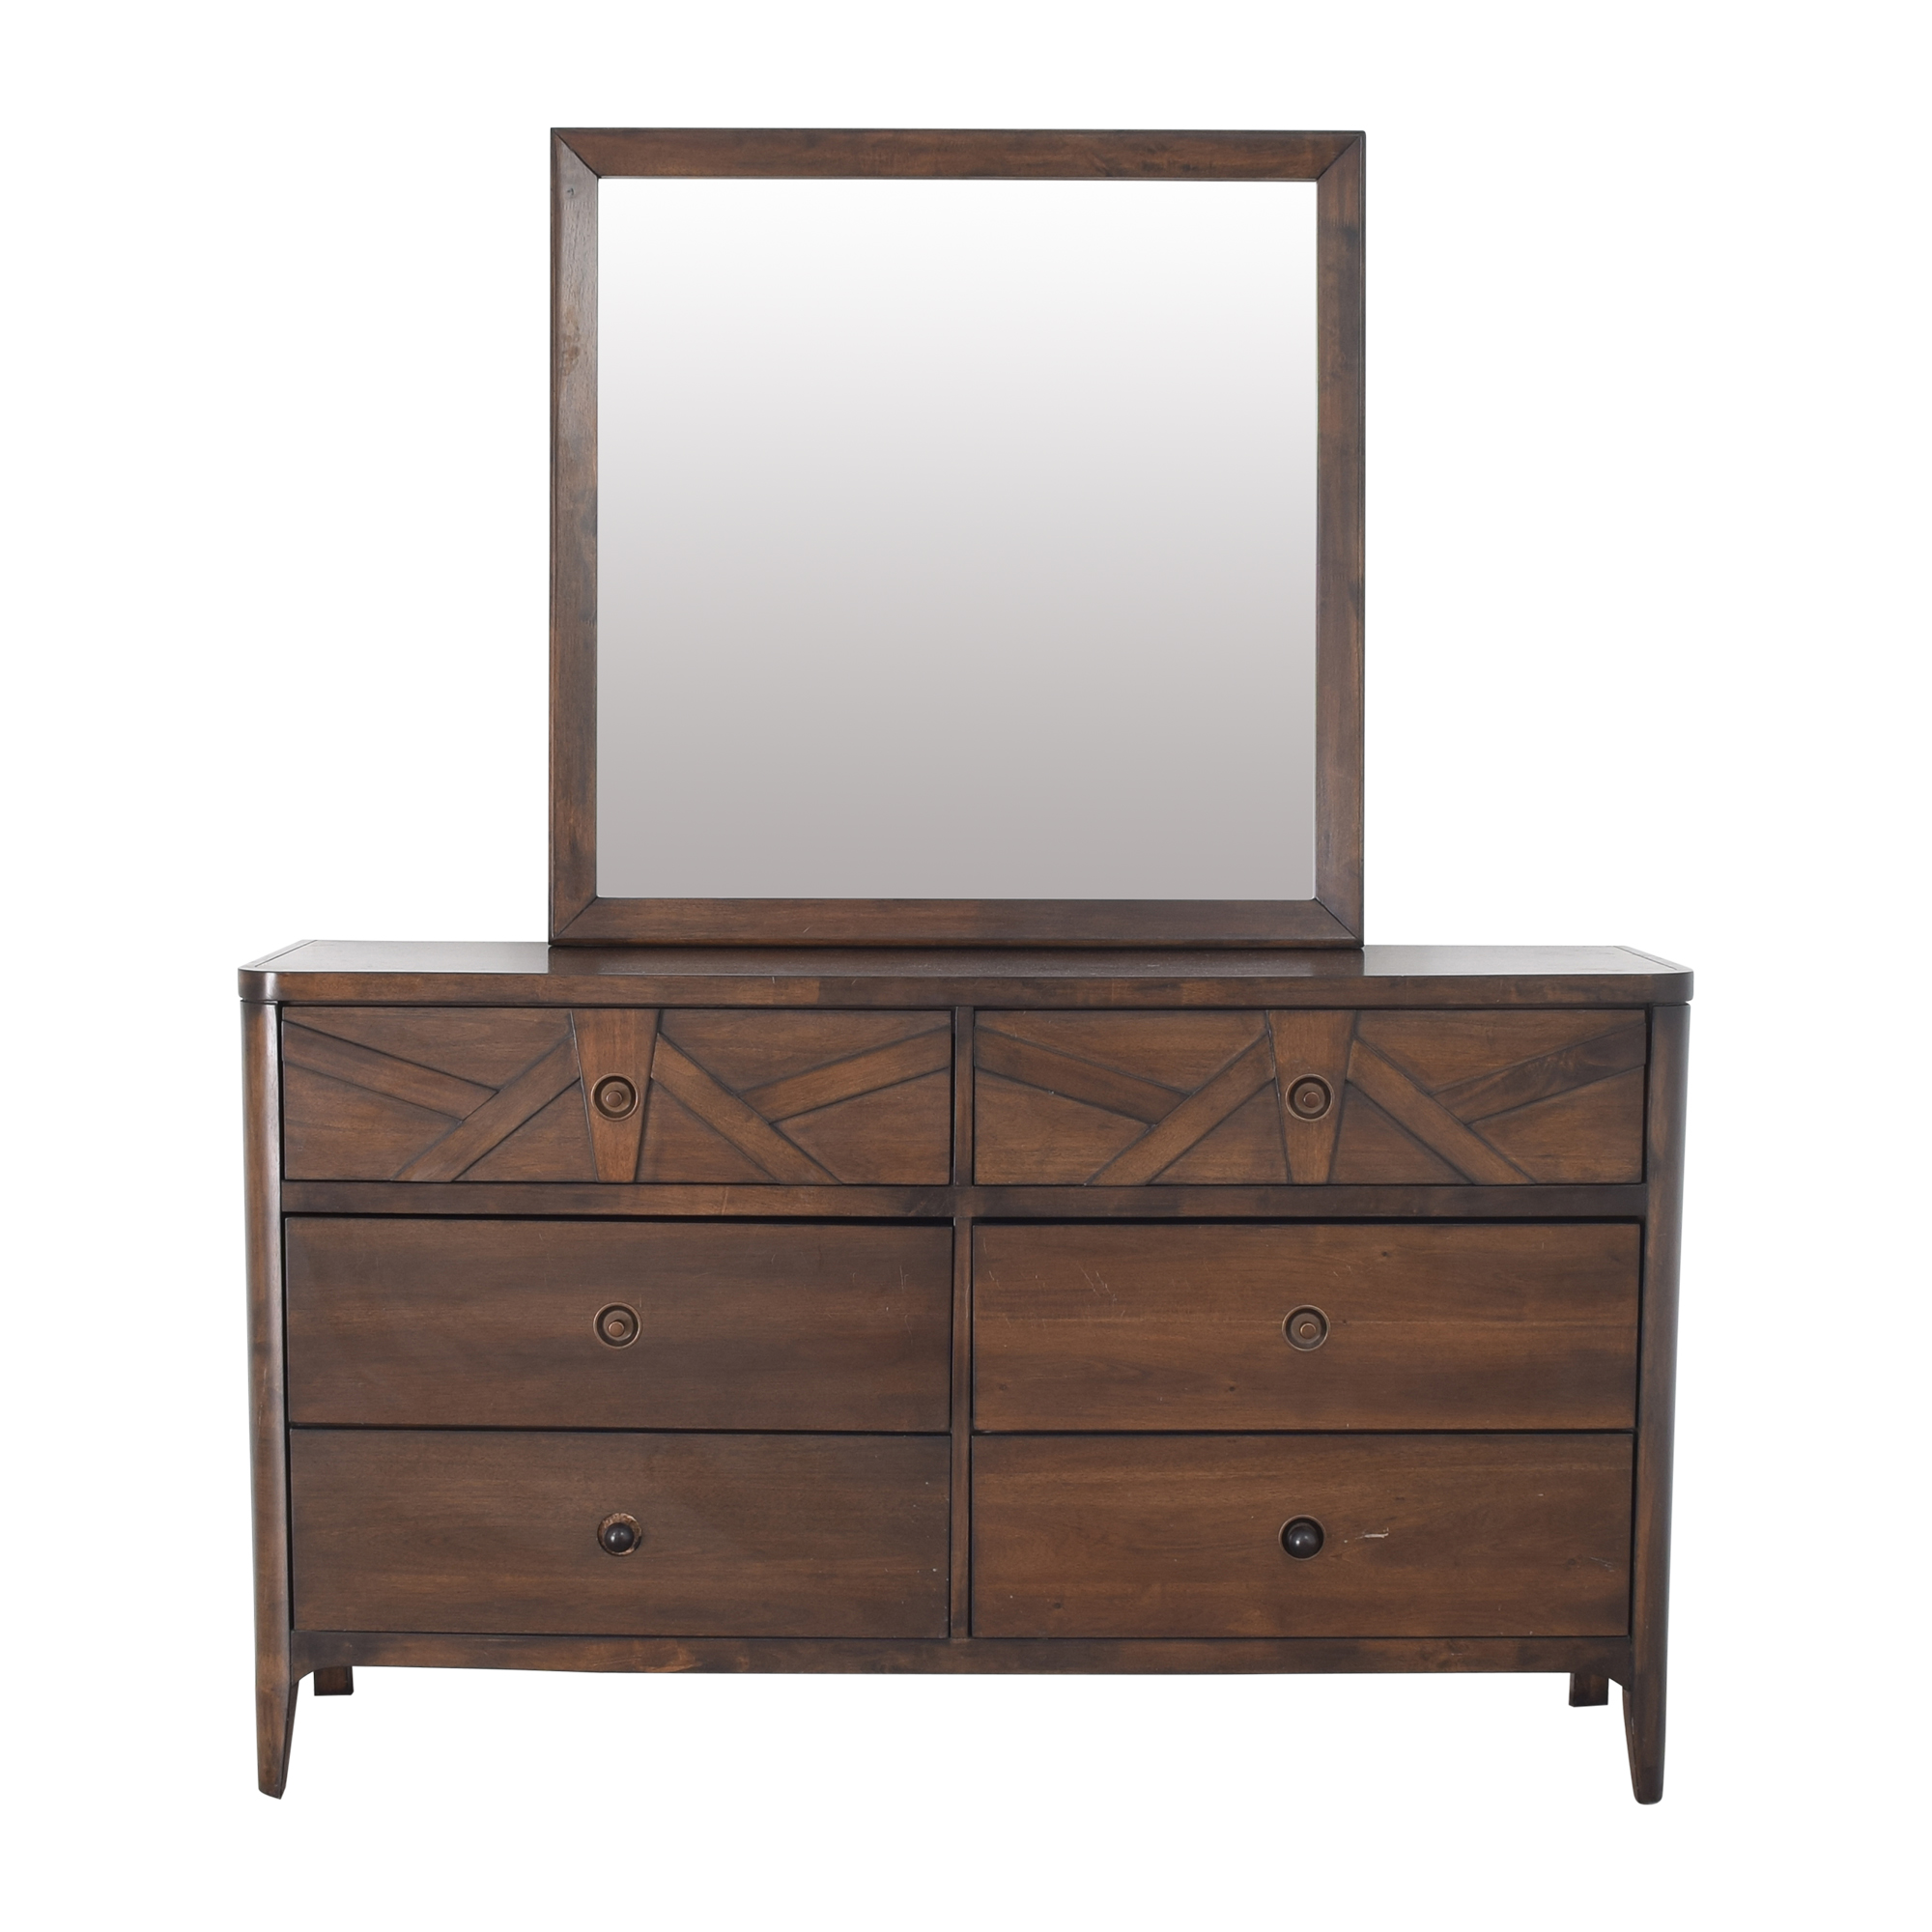 Raymour & Flanigan Raymour & Flanigan Double Dresser with Mirror brown